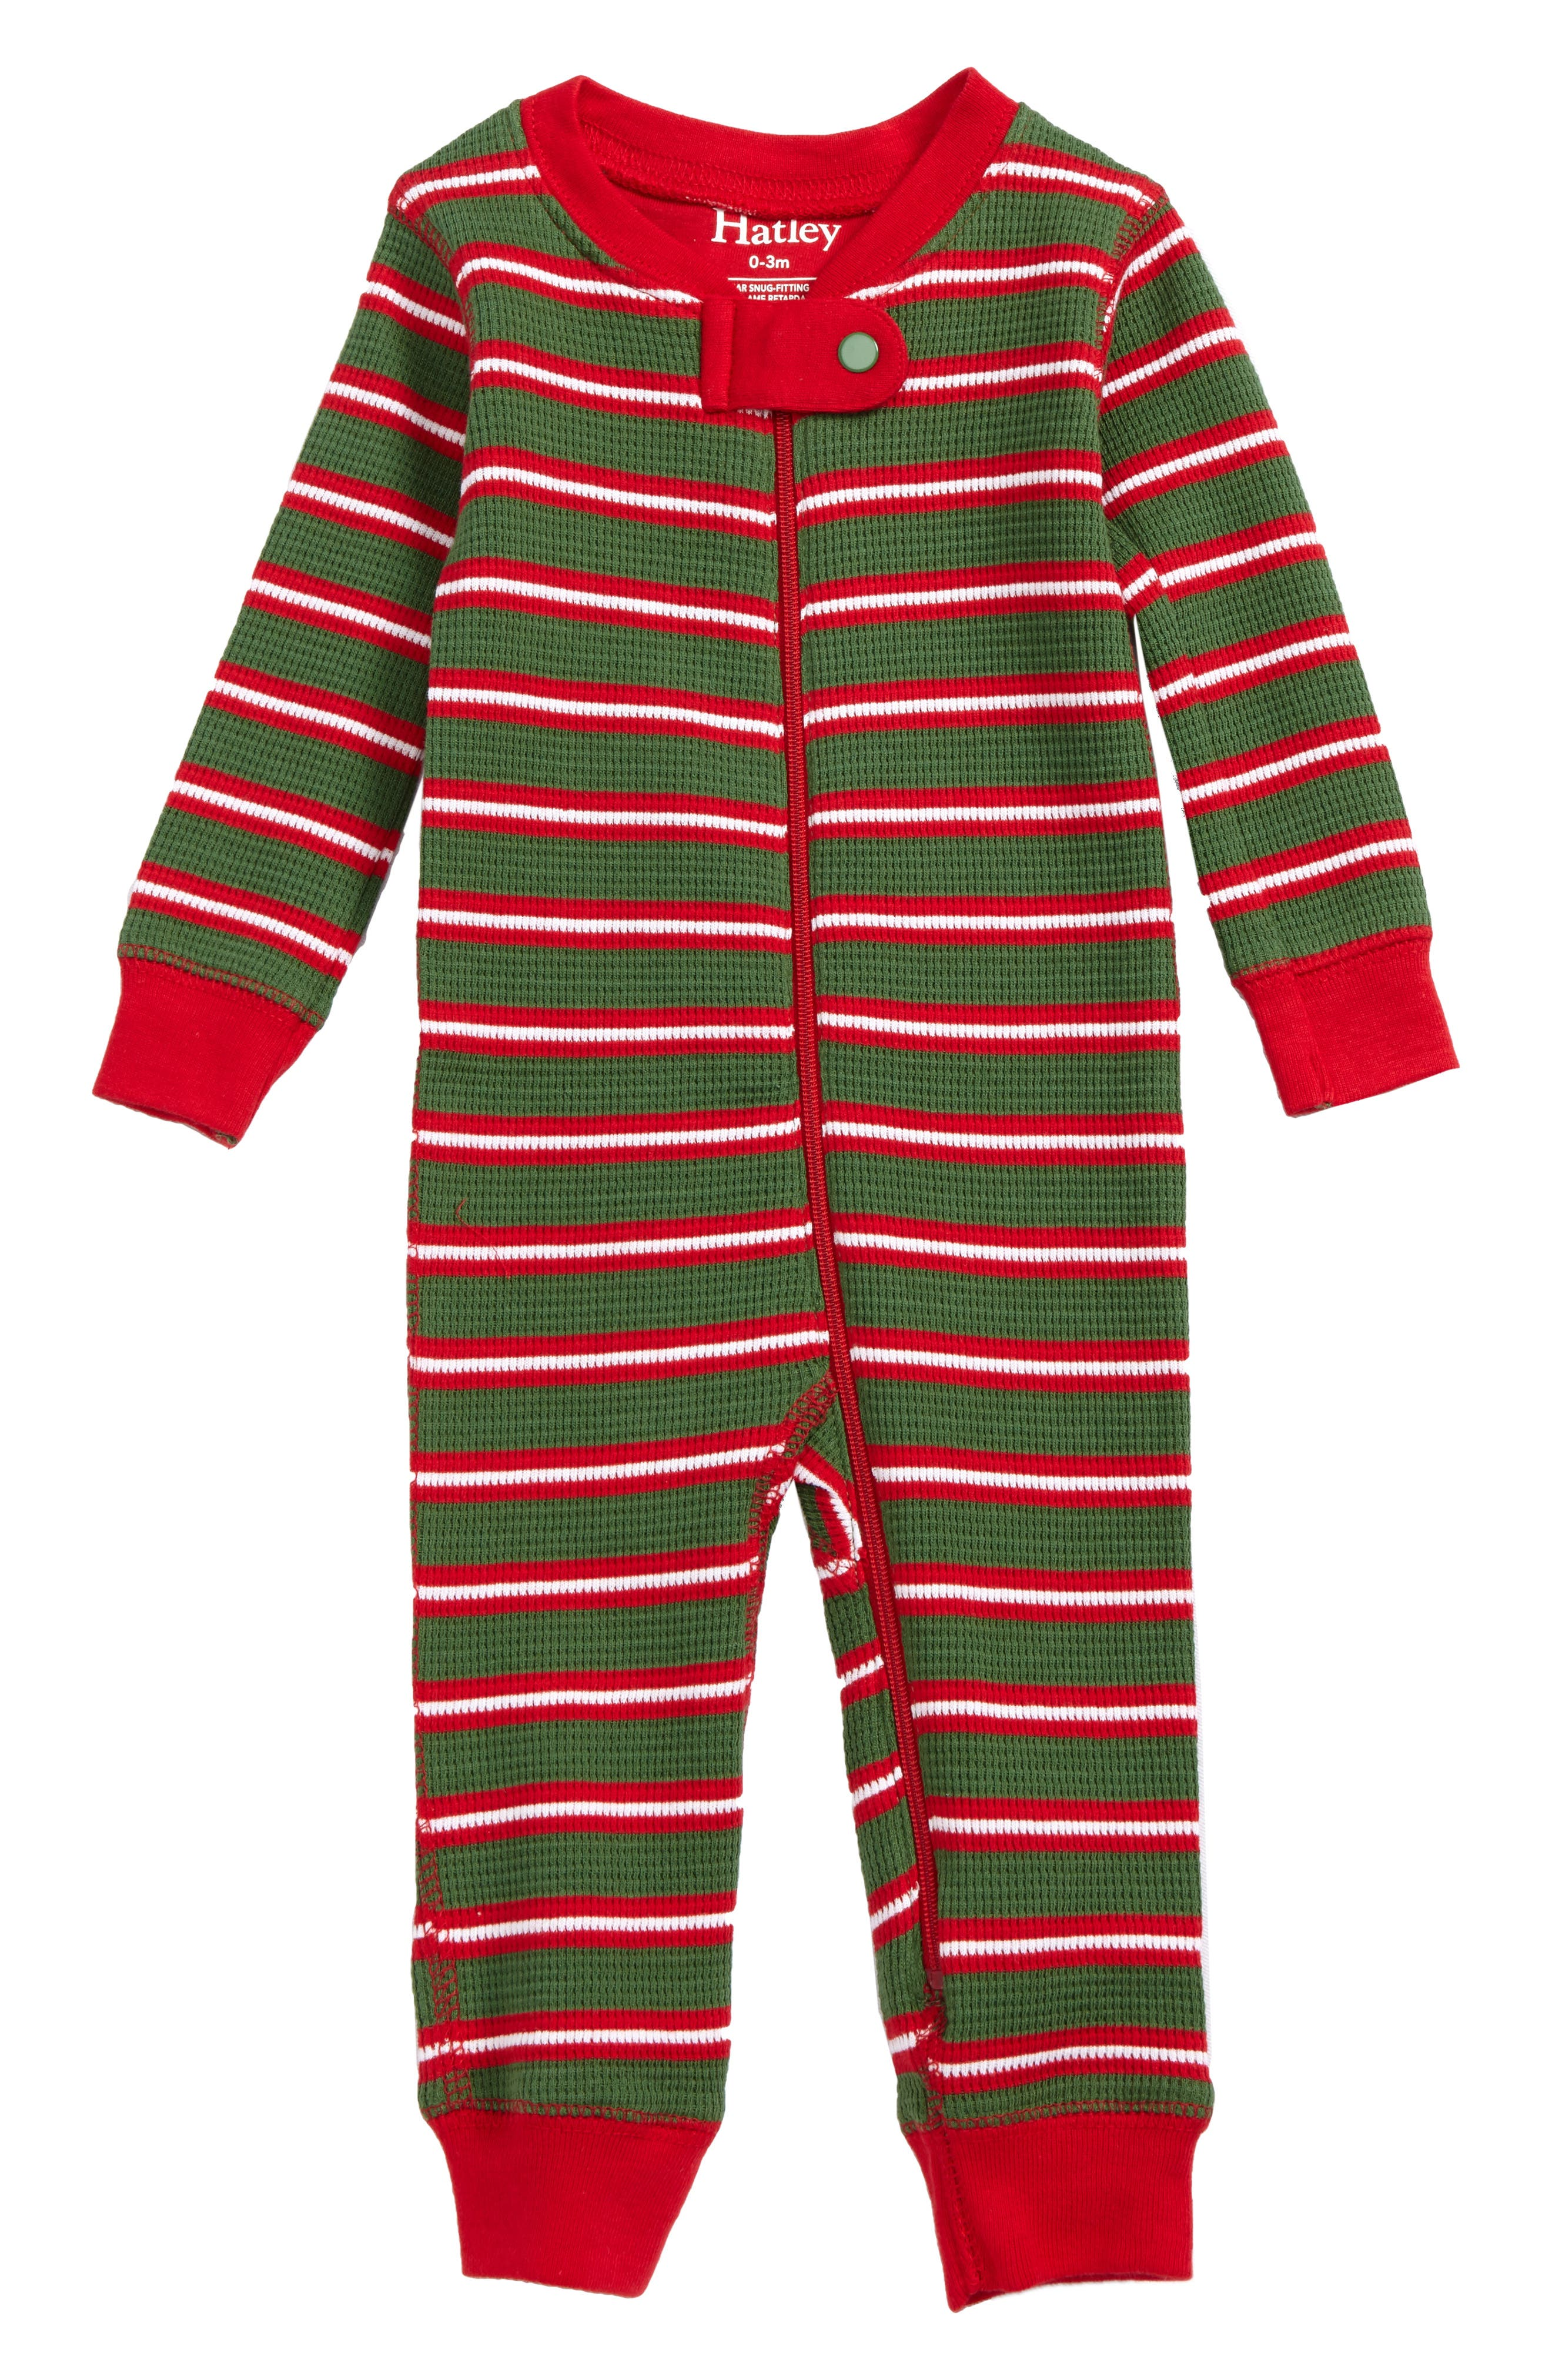 Hatley Waffle Knit Organic Cotton Fitted One-Piece Pajamas (Baby)